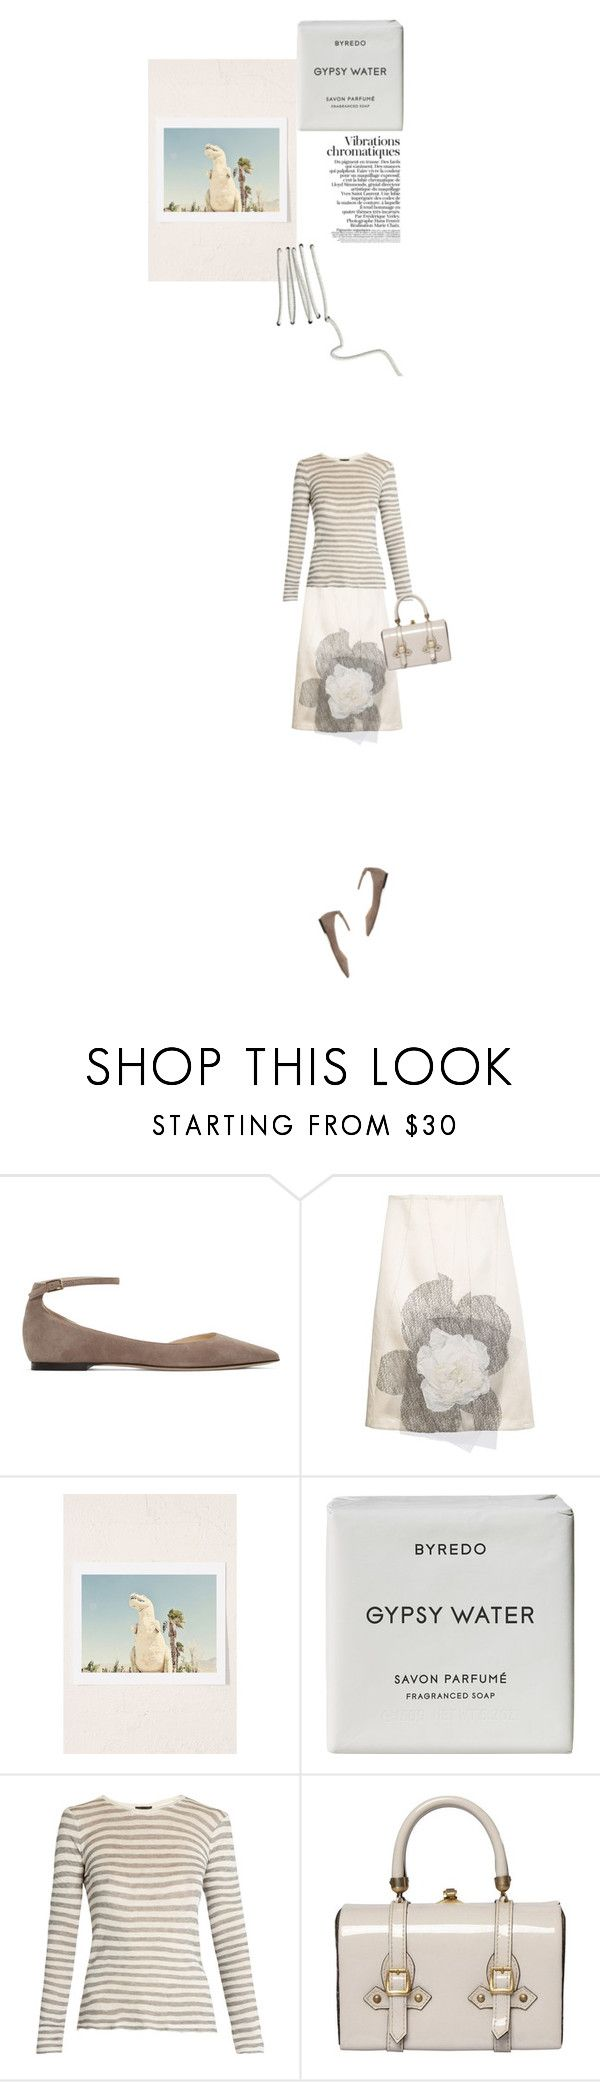 """""""like trying to stitch water together..."""" by paperdollsq ❤ liked on Polyvore featuring Jimmy Choo, Creatures of the Wind, Urban Outfitters, Byredo, ATM by Anthony Thomas Melillo, Tano, falala and 2to5onsunday"""